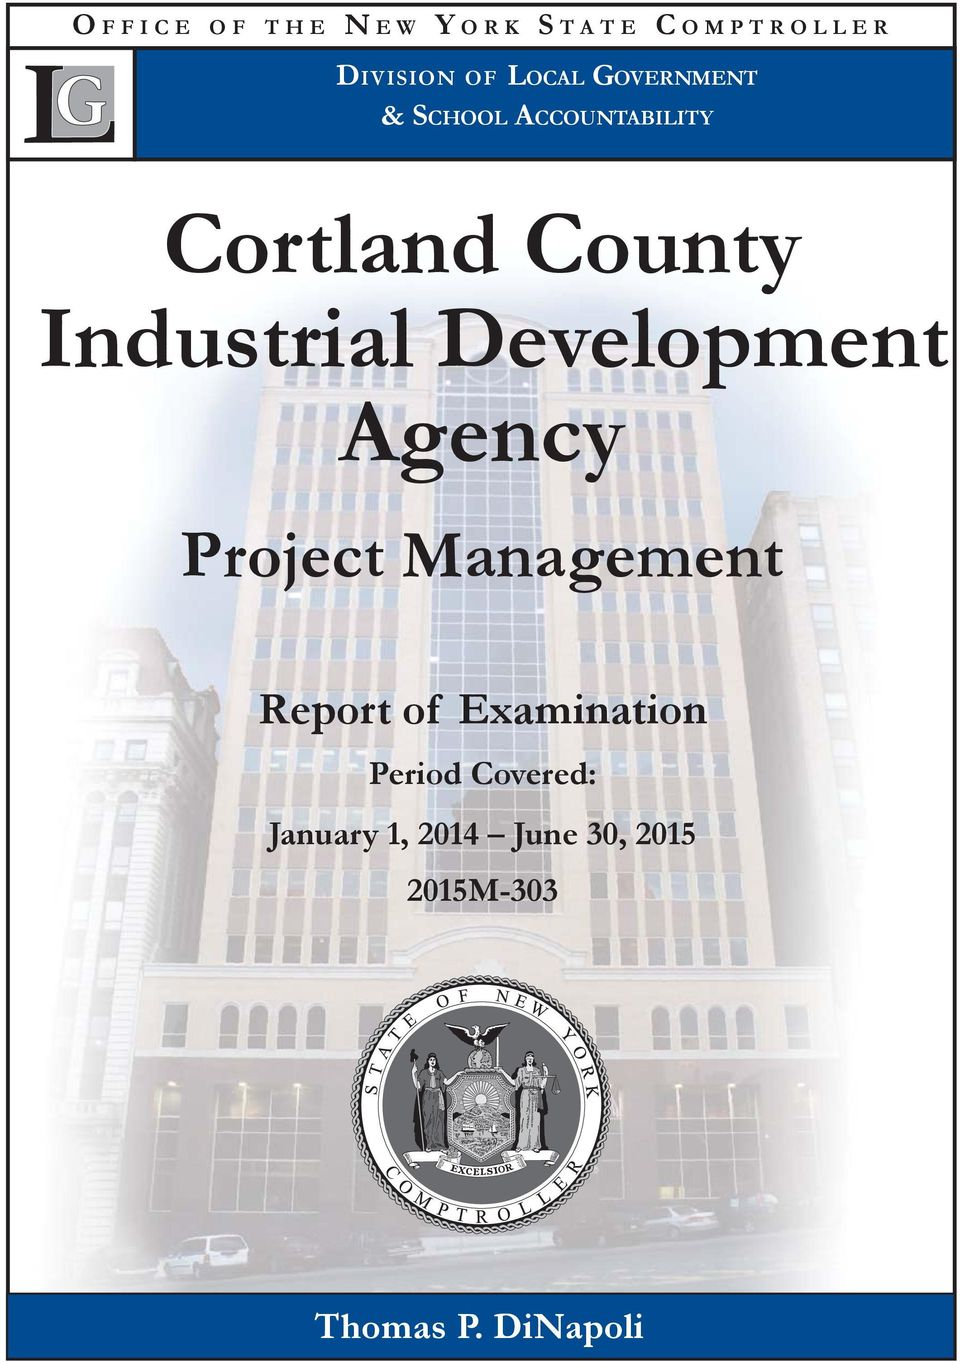 Development Agency Project Management Report of Examination